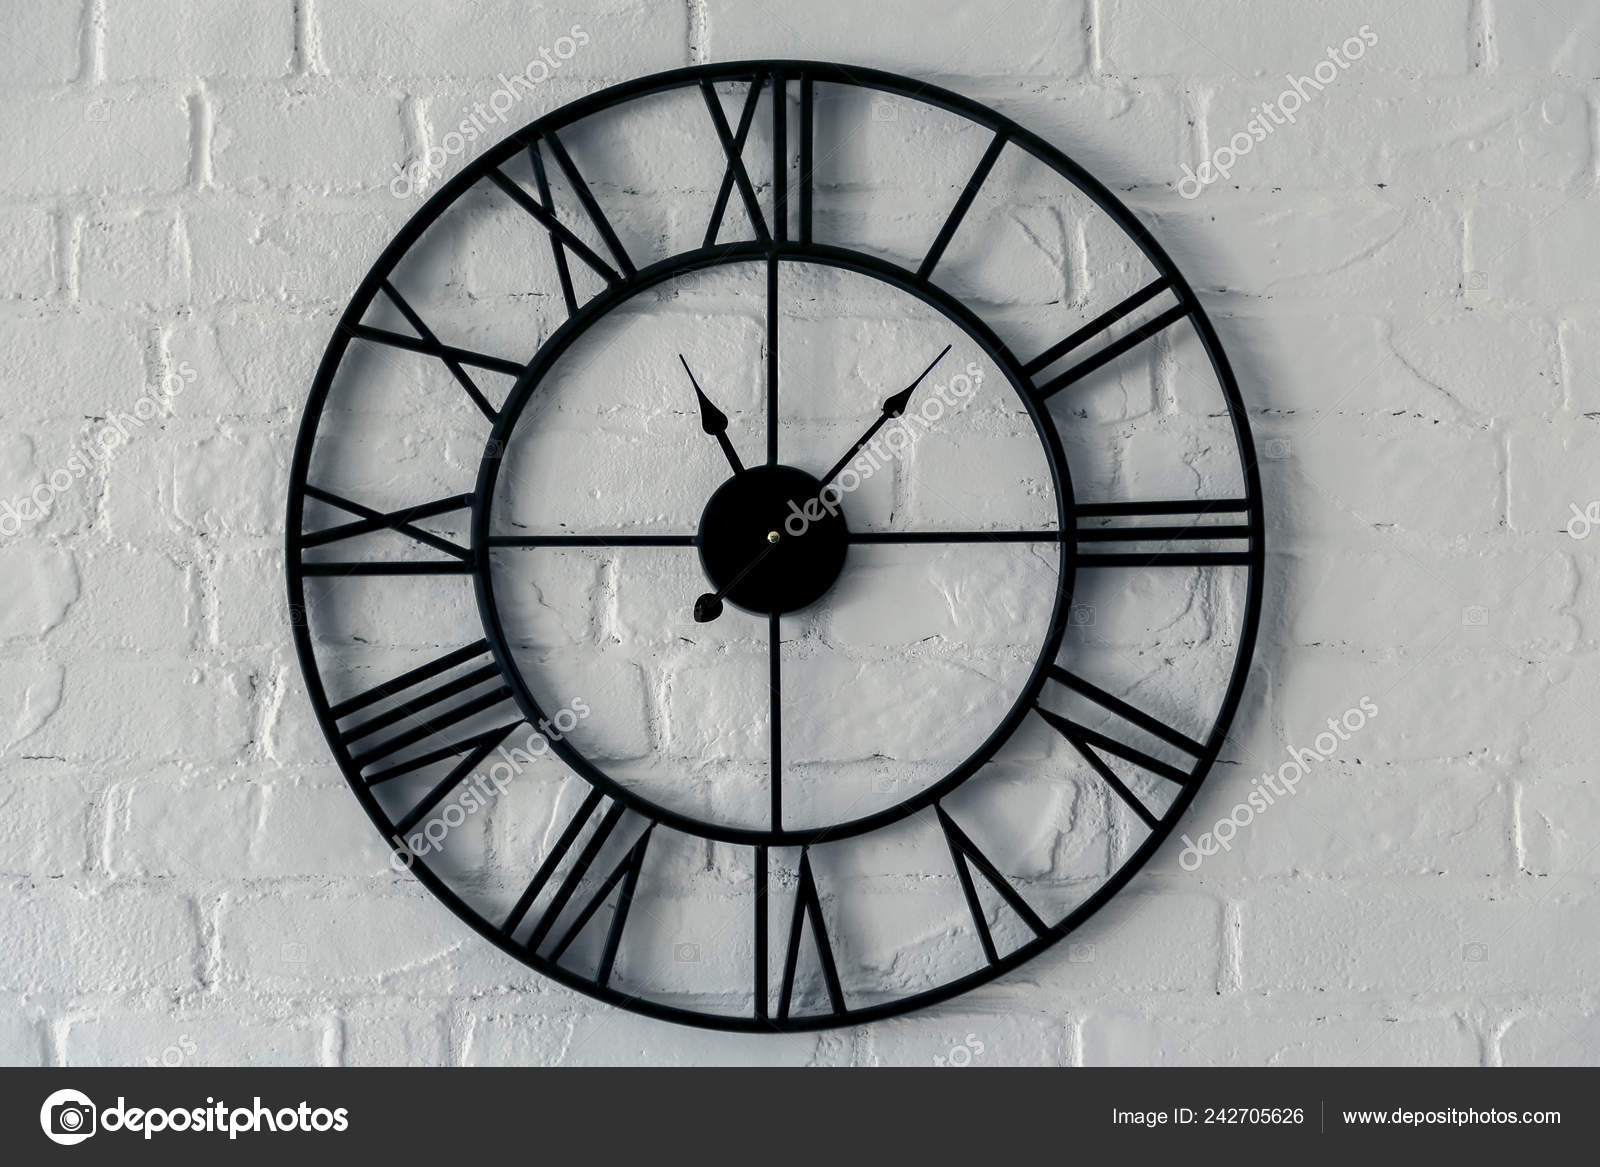 Vintage Clock Roman Numeral Wall Clock Face Dialrustical White Brick Stock Photo Image By Ondrooo 242705626